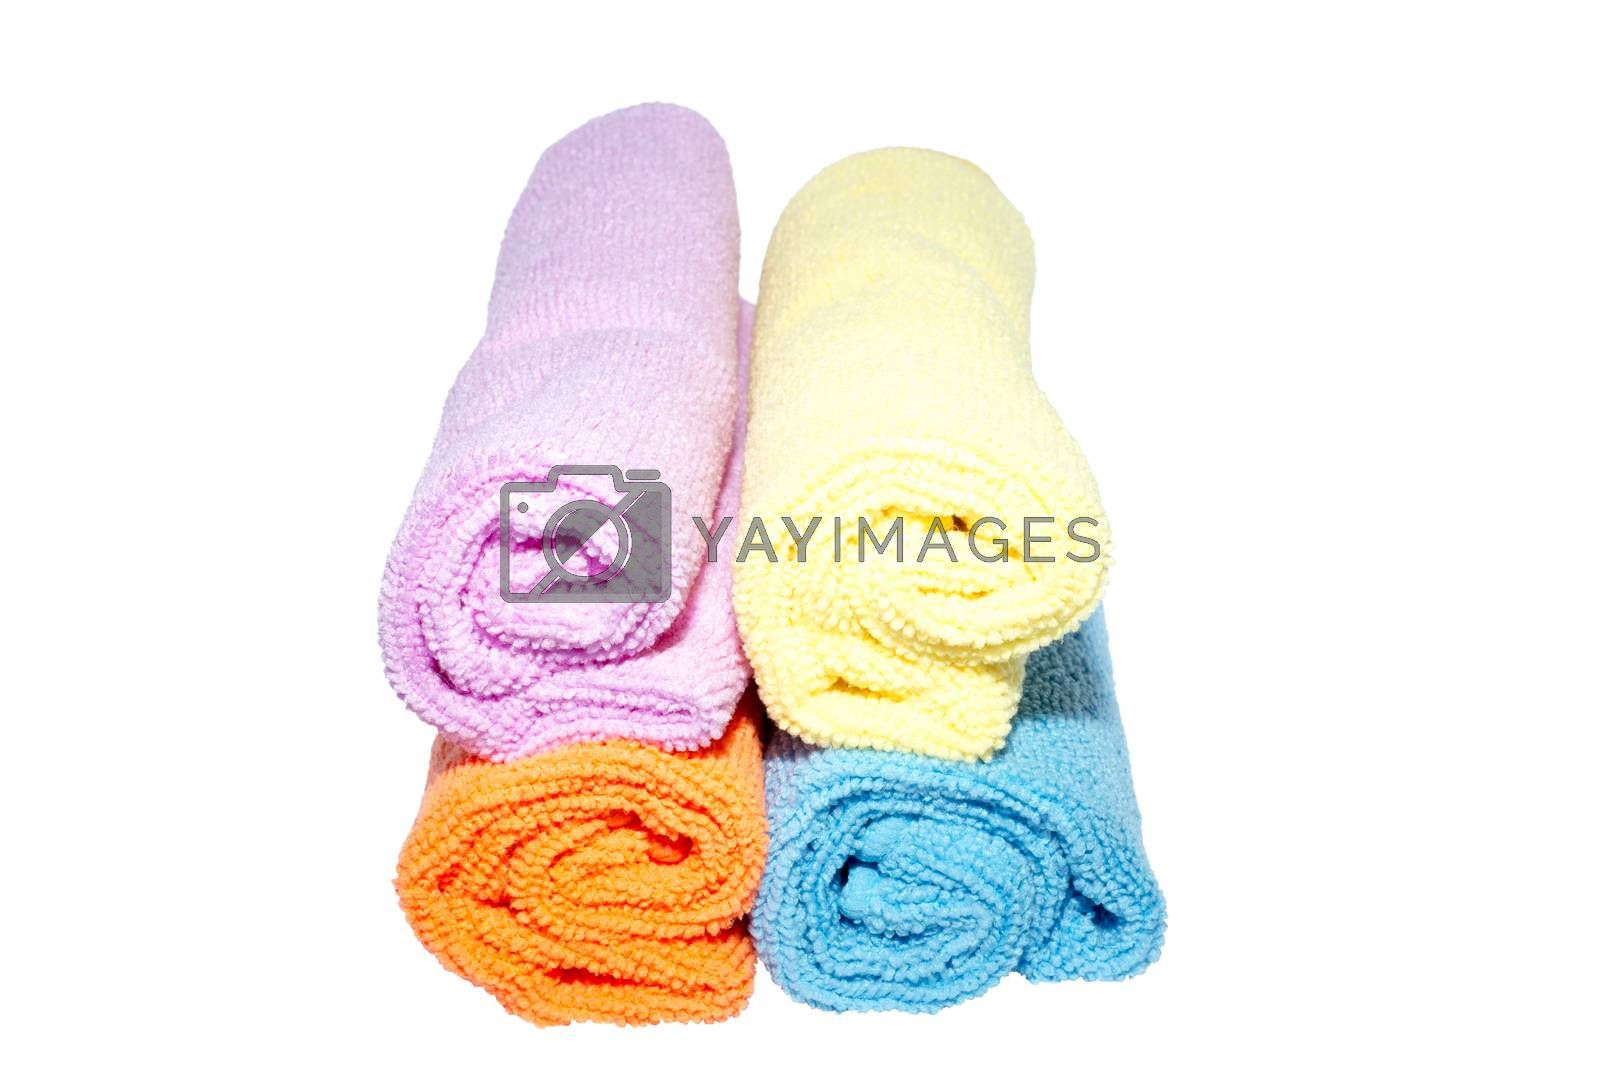 facecloths off various shades with some in rolls